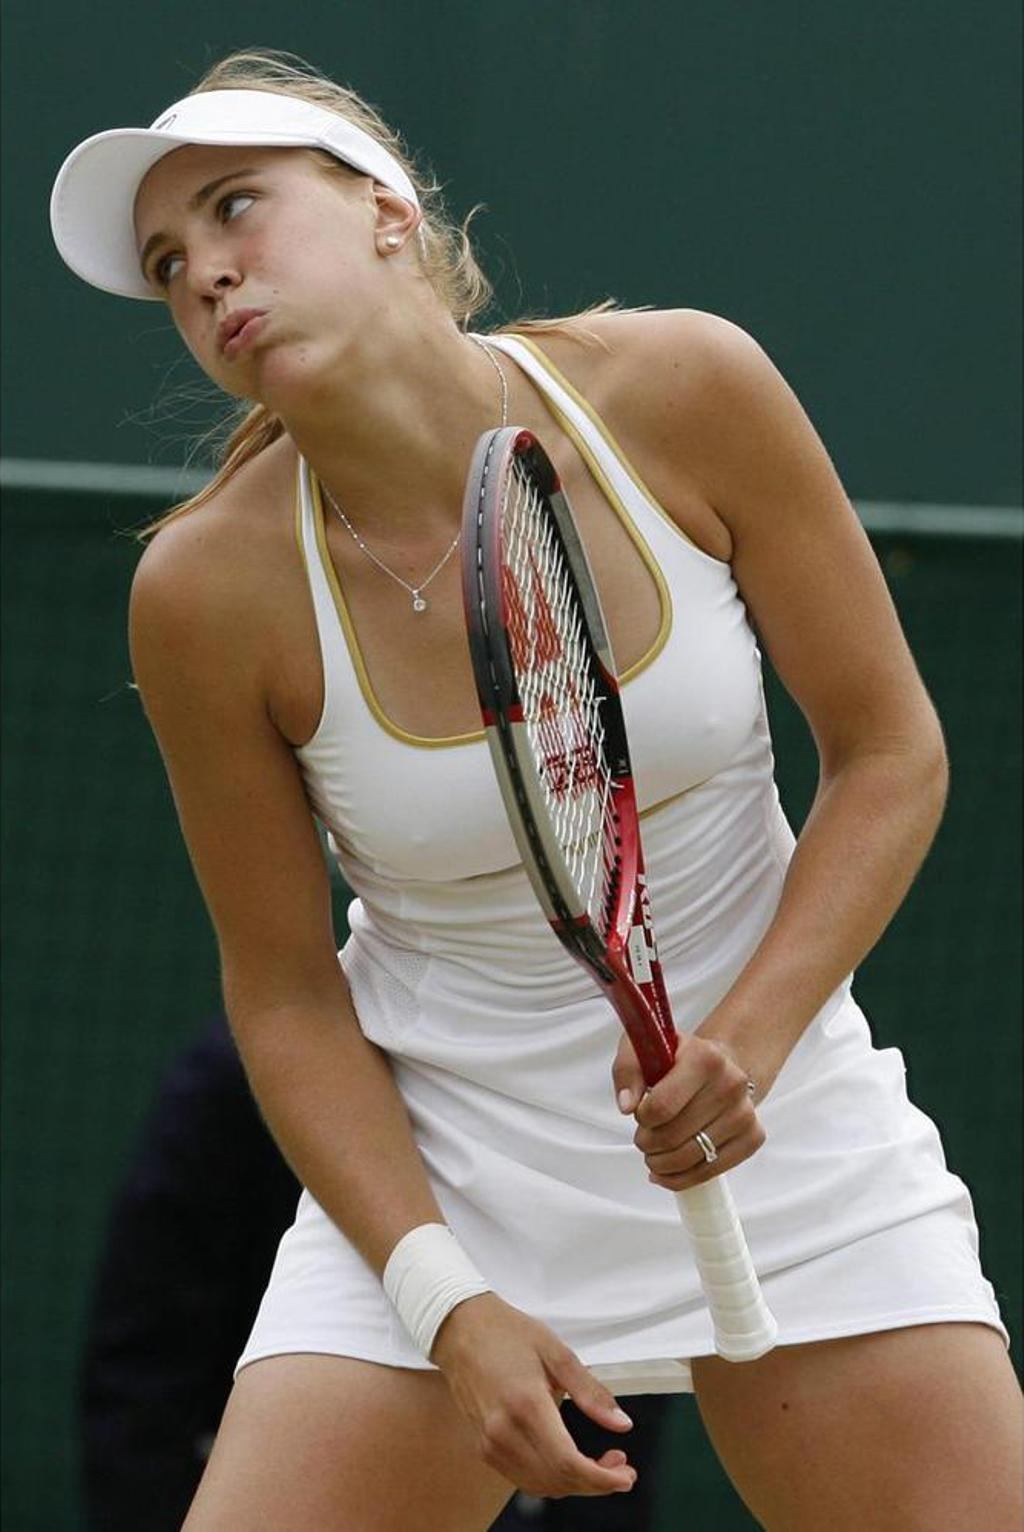 Tennis images Vaidisova touches in crotch HD wallpaper and background ...